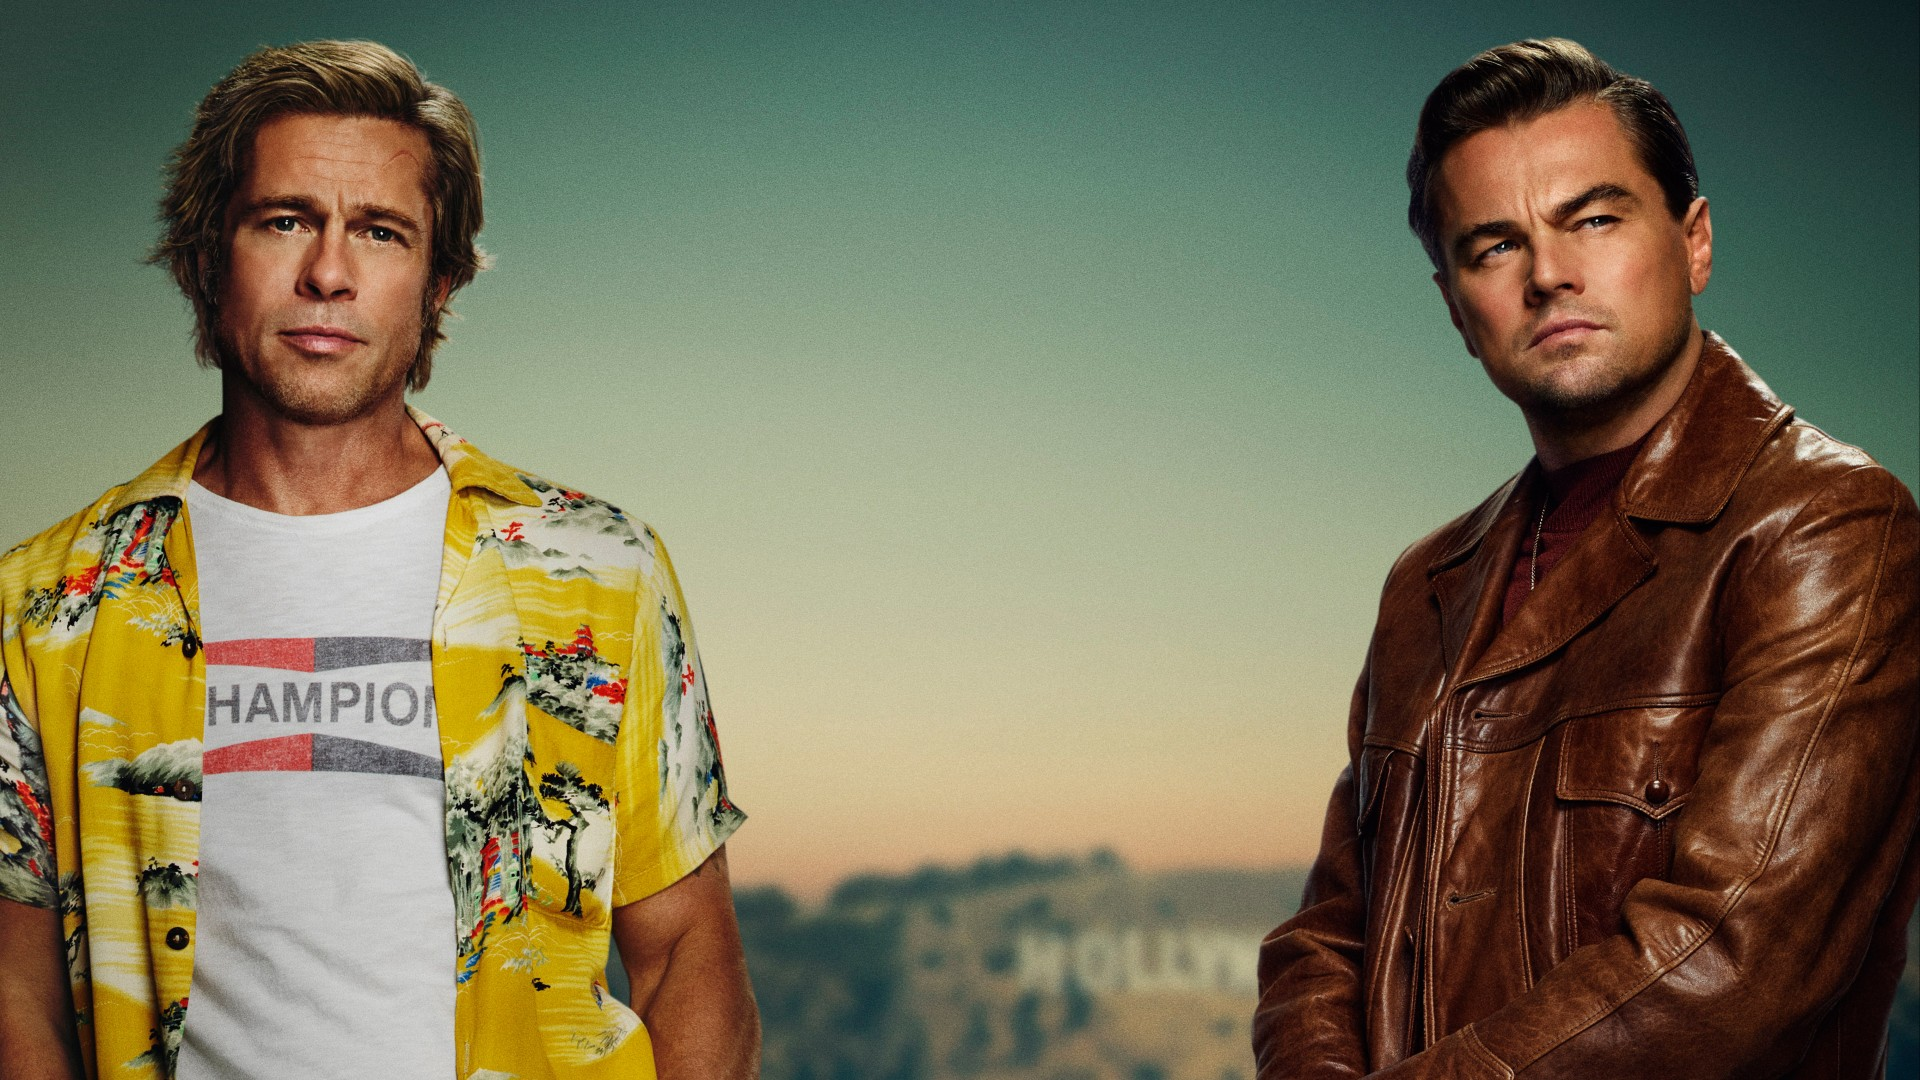 once-upon-a-time-in-hollywood-1920x1080-brad-pitt-leonardo-dicaprio-5k-21864.jpg